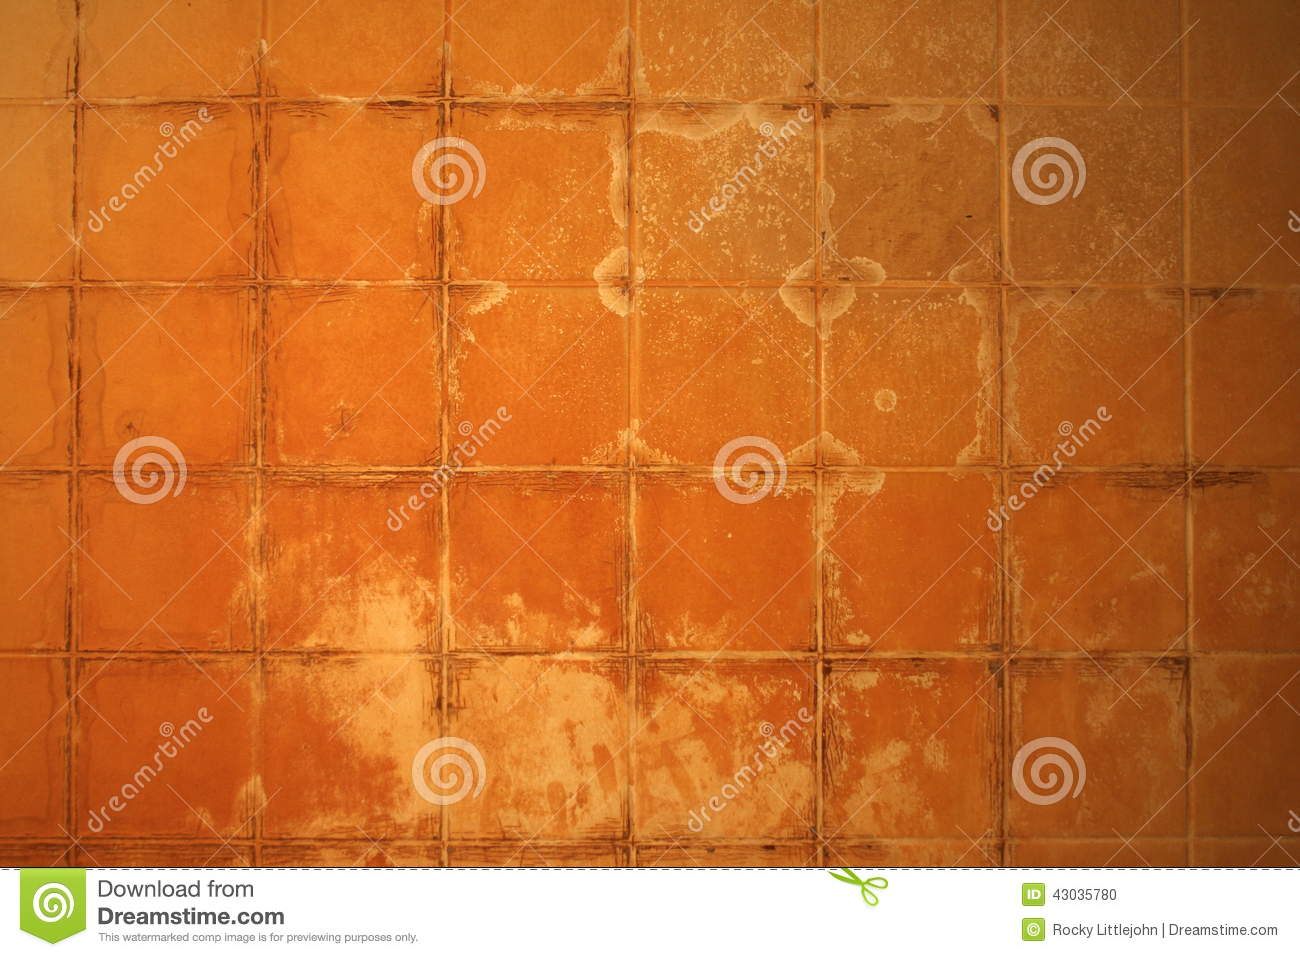 Hard Water Stained Fiberglass Tile Stock Photo - Image of iron ...